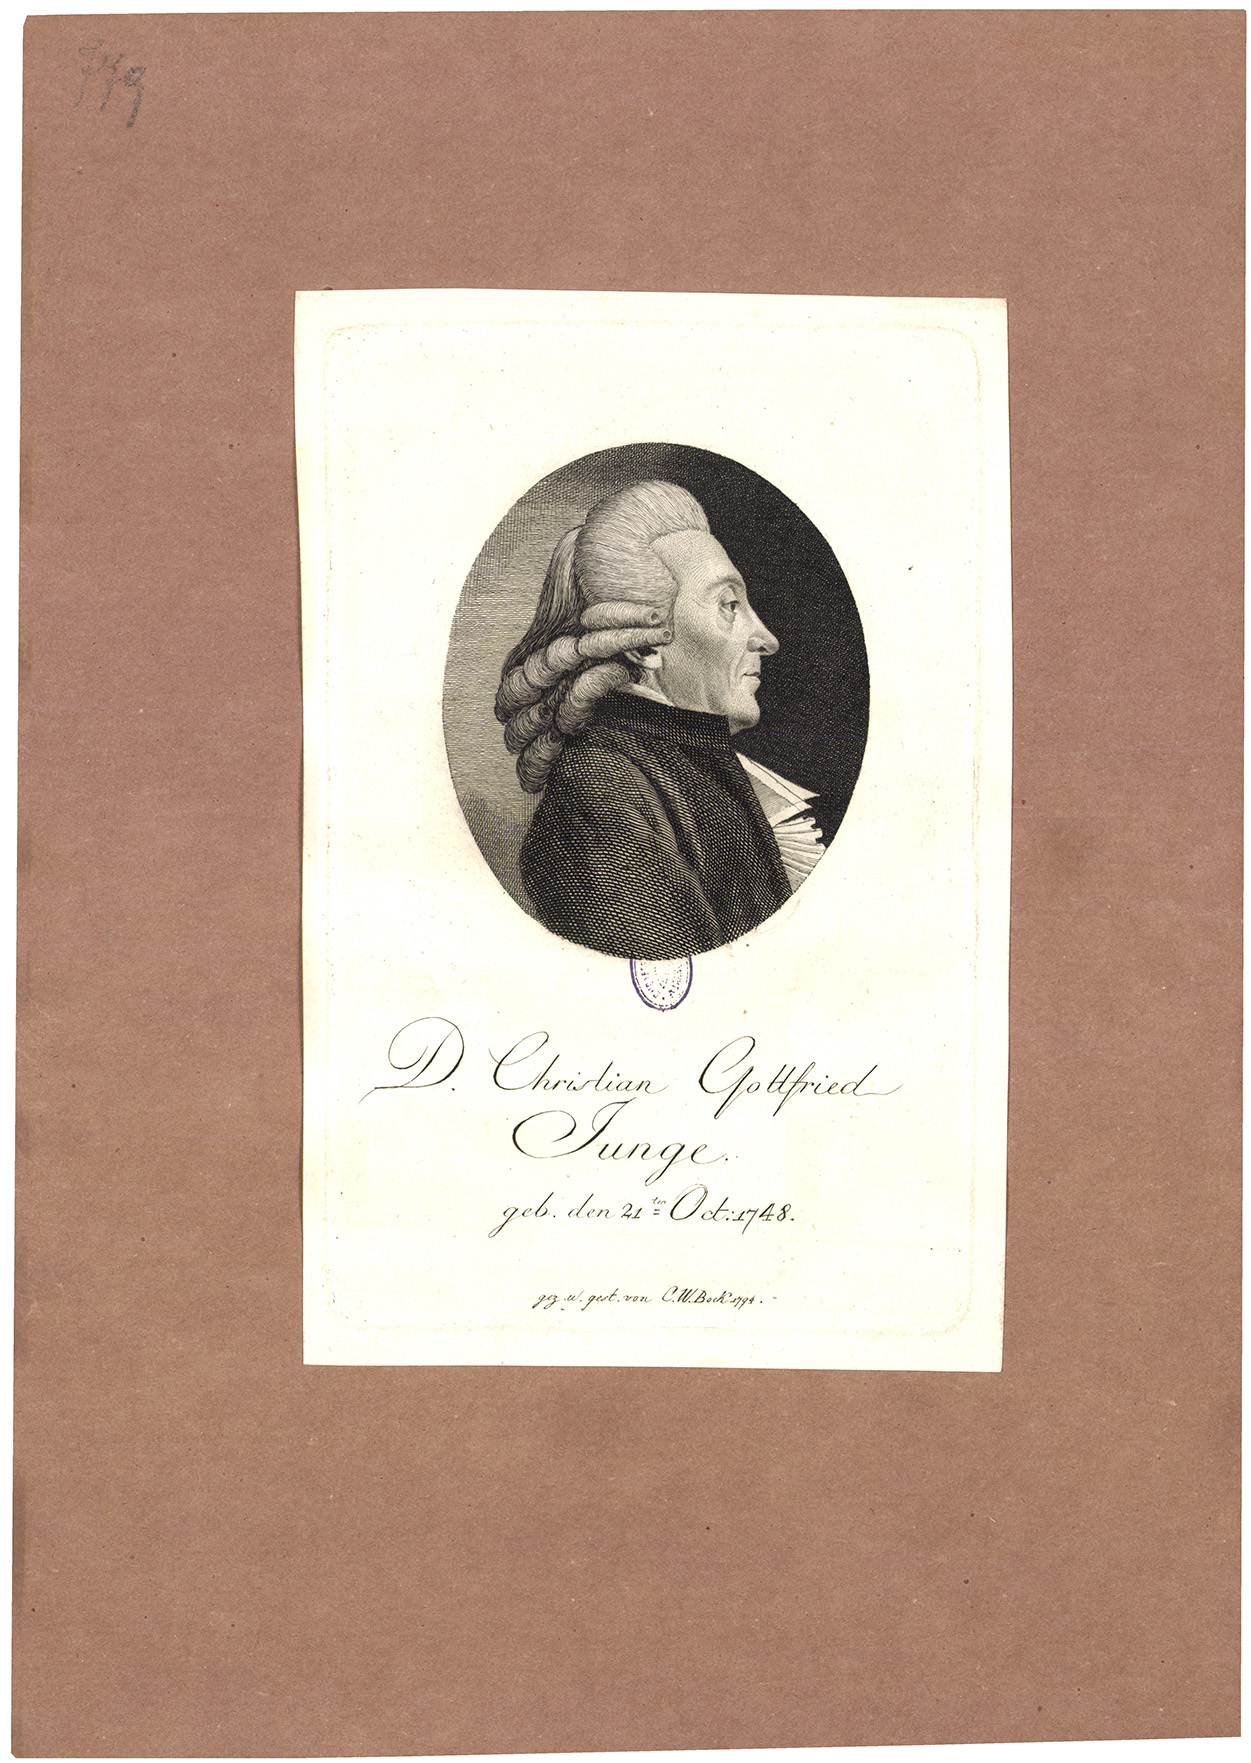 D. Christian Gottfried Junge. geb. den. 21ten Oct. 1748